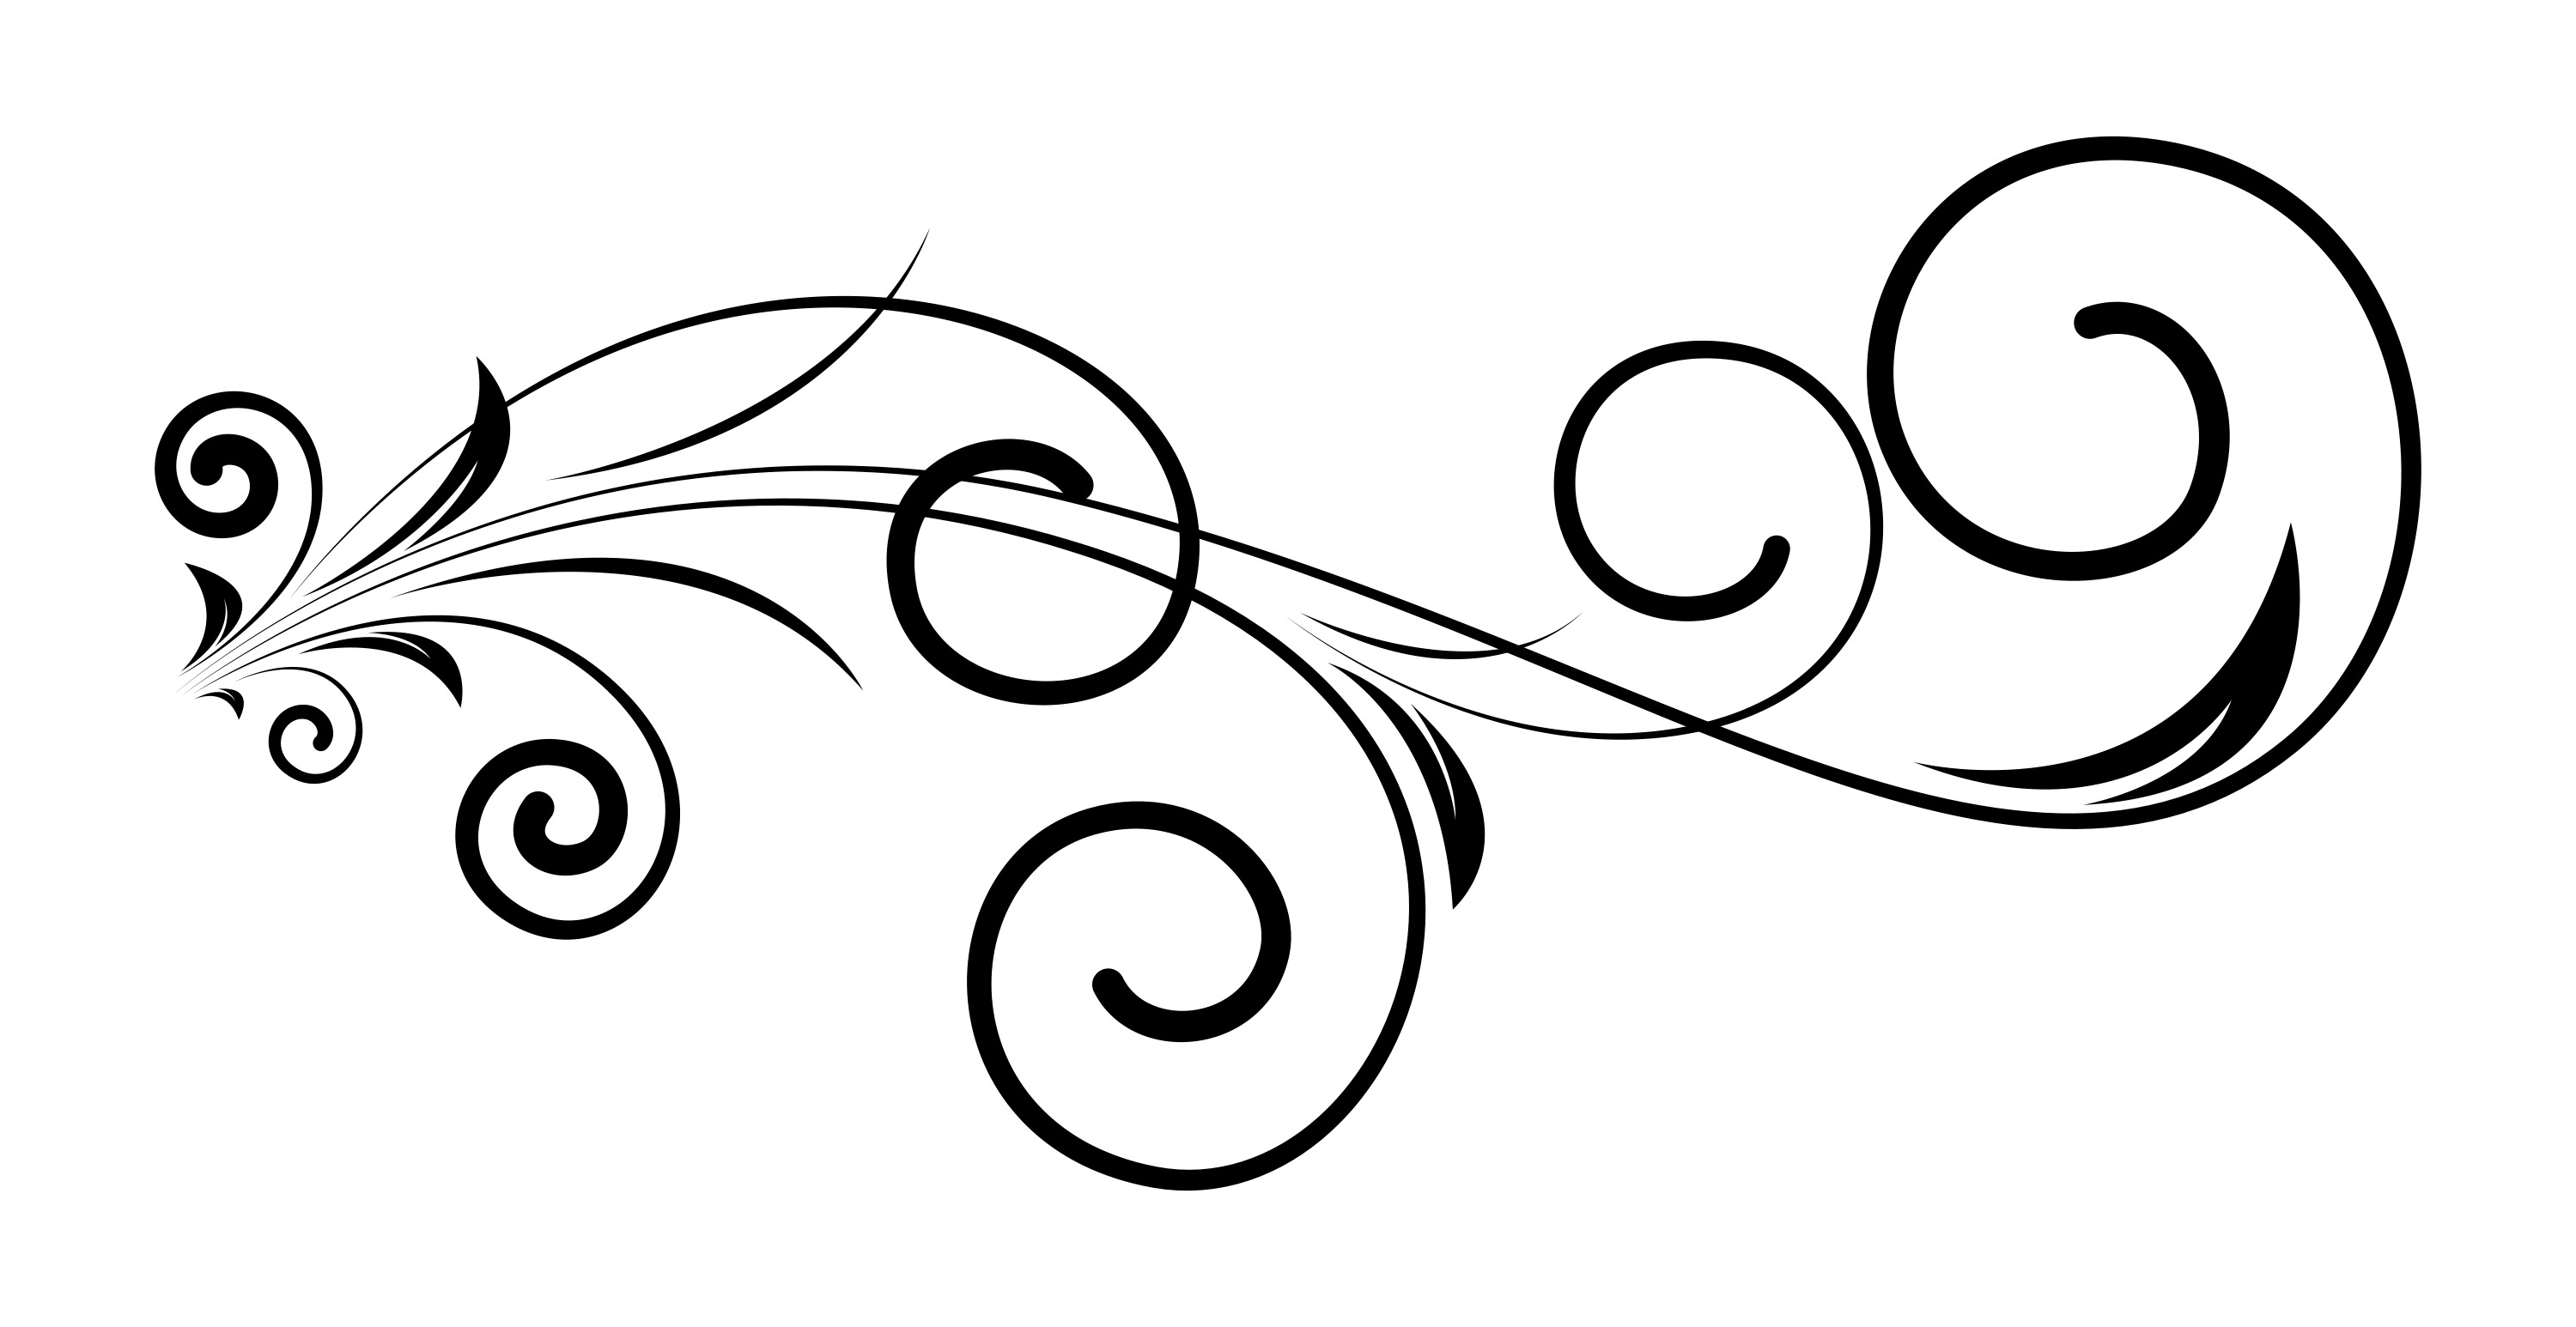 Red And Black Swirl Design Clipart - Full Size Clipart (#7068) - PinClipart